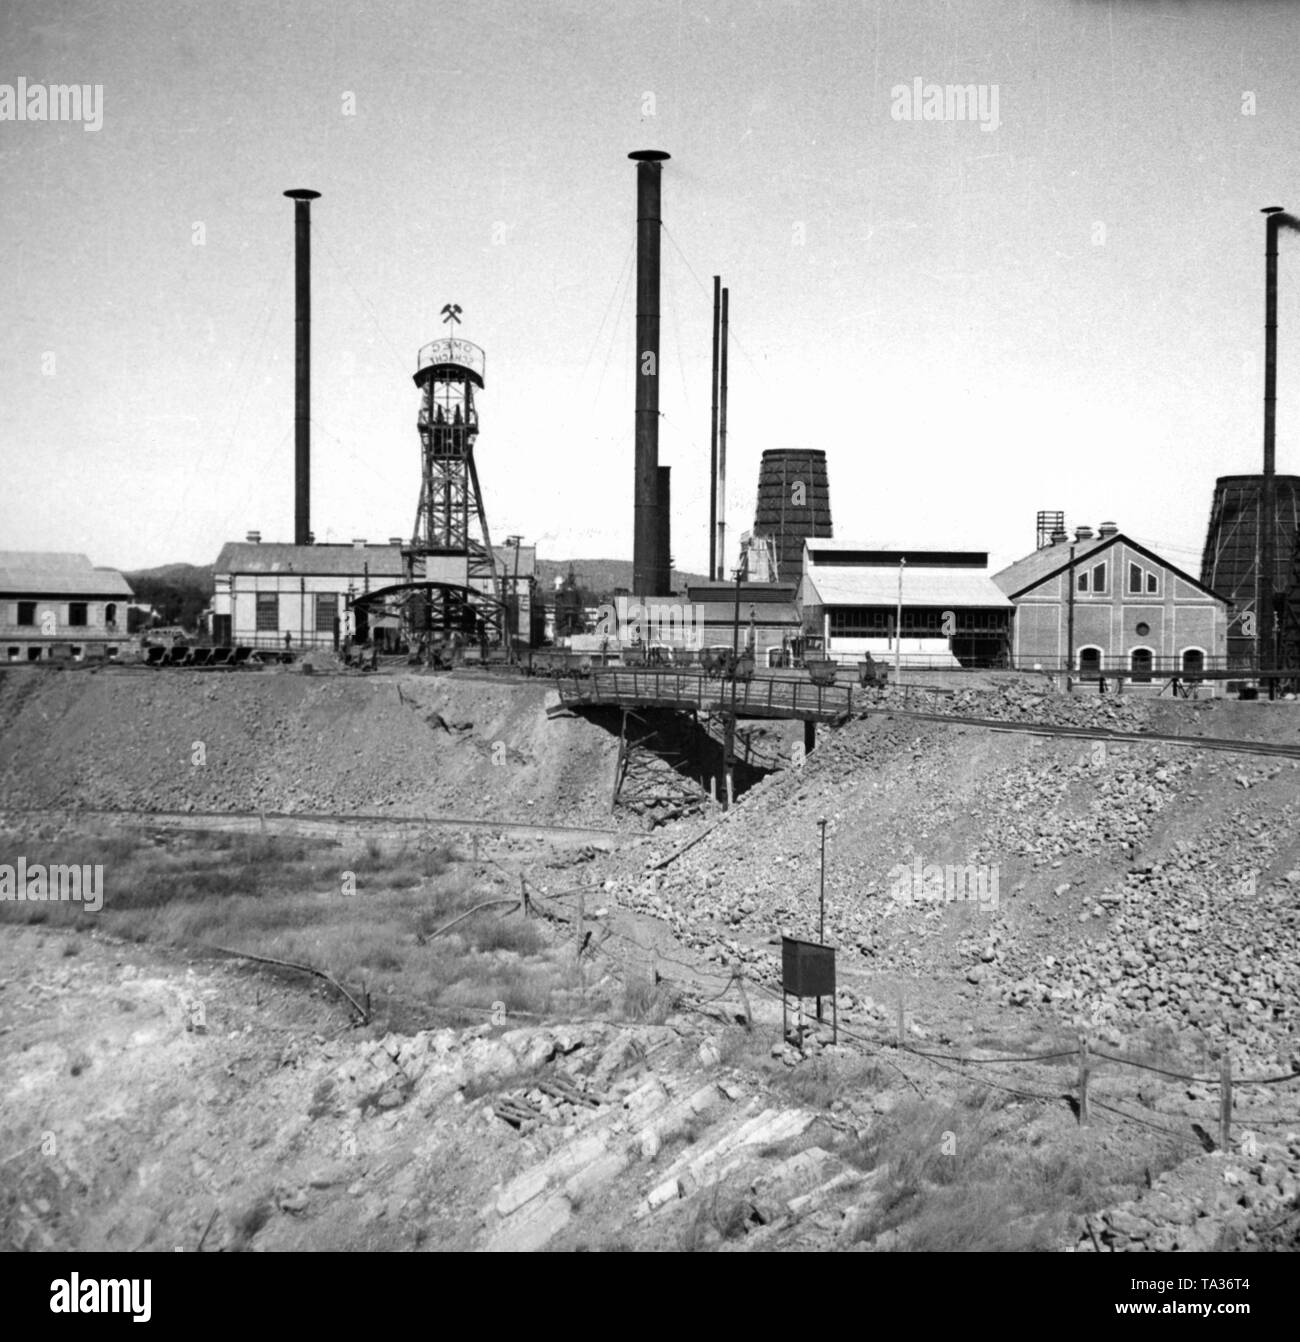 The Tsumeb mine in German South West Africa, which was operated from 1907 to 1996. It belonged to the Otavi Mining and Railway Company. (OMEG) - Stock Image